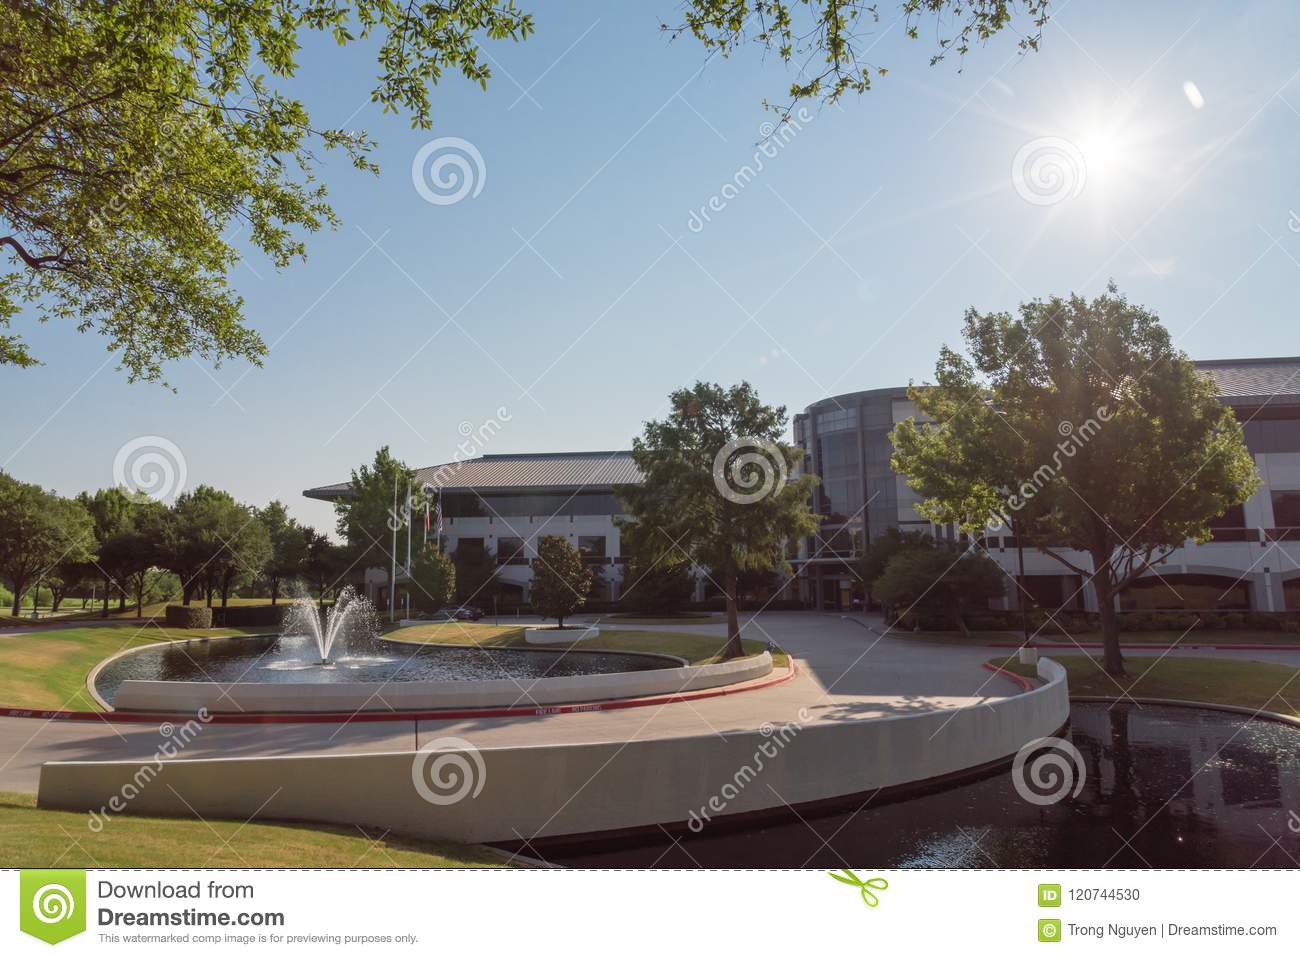 Corporate headquarters campus of Keurig Dr Pepper in Plano, Texas, USA